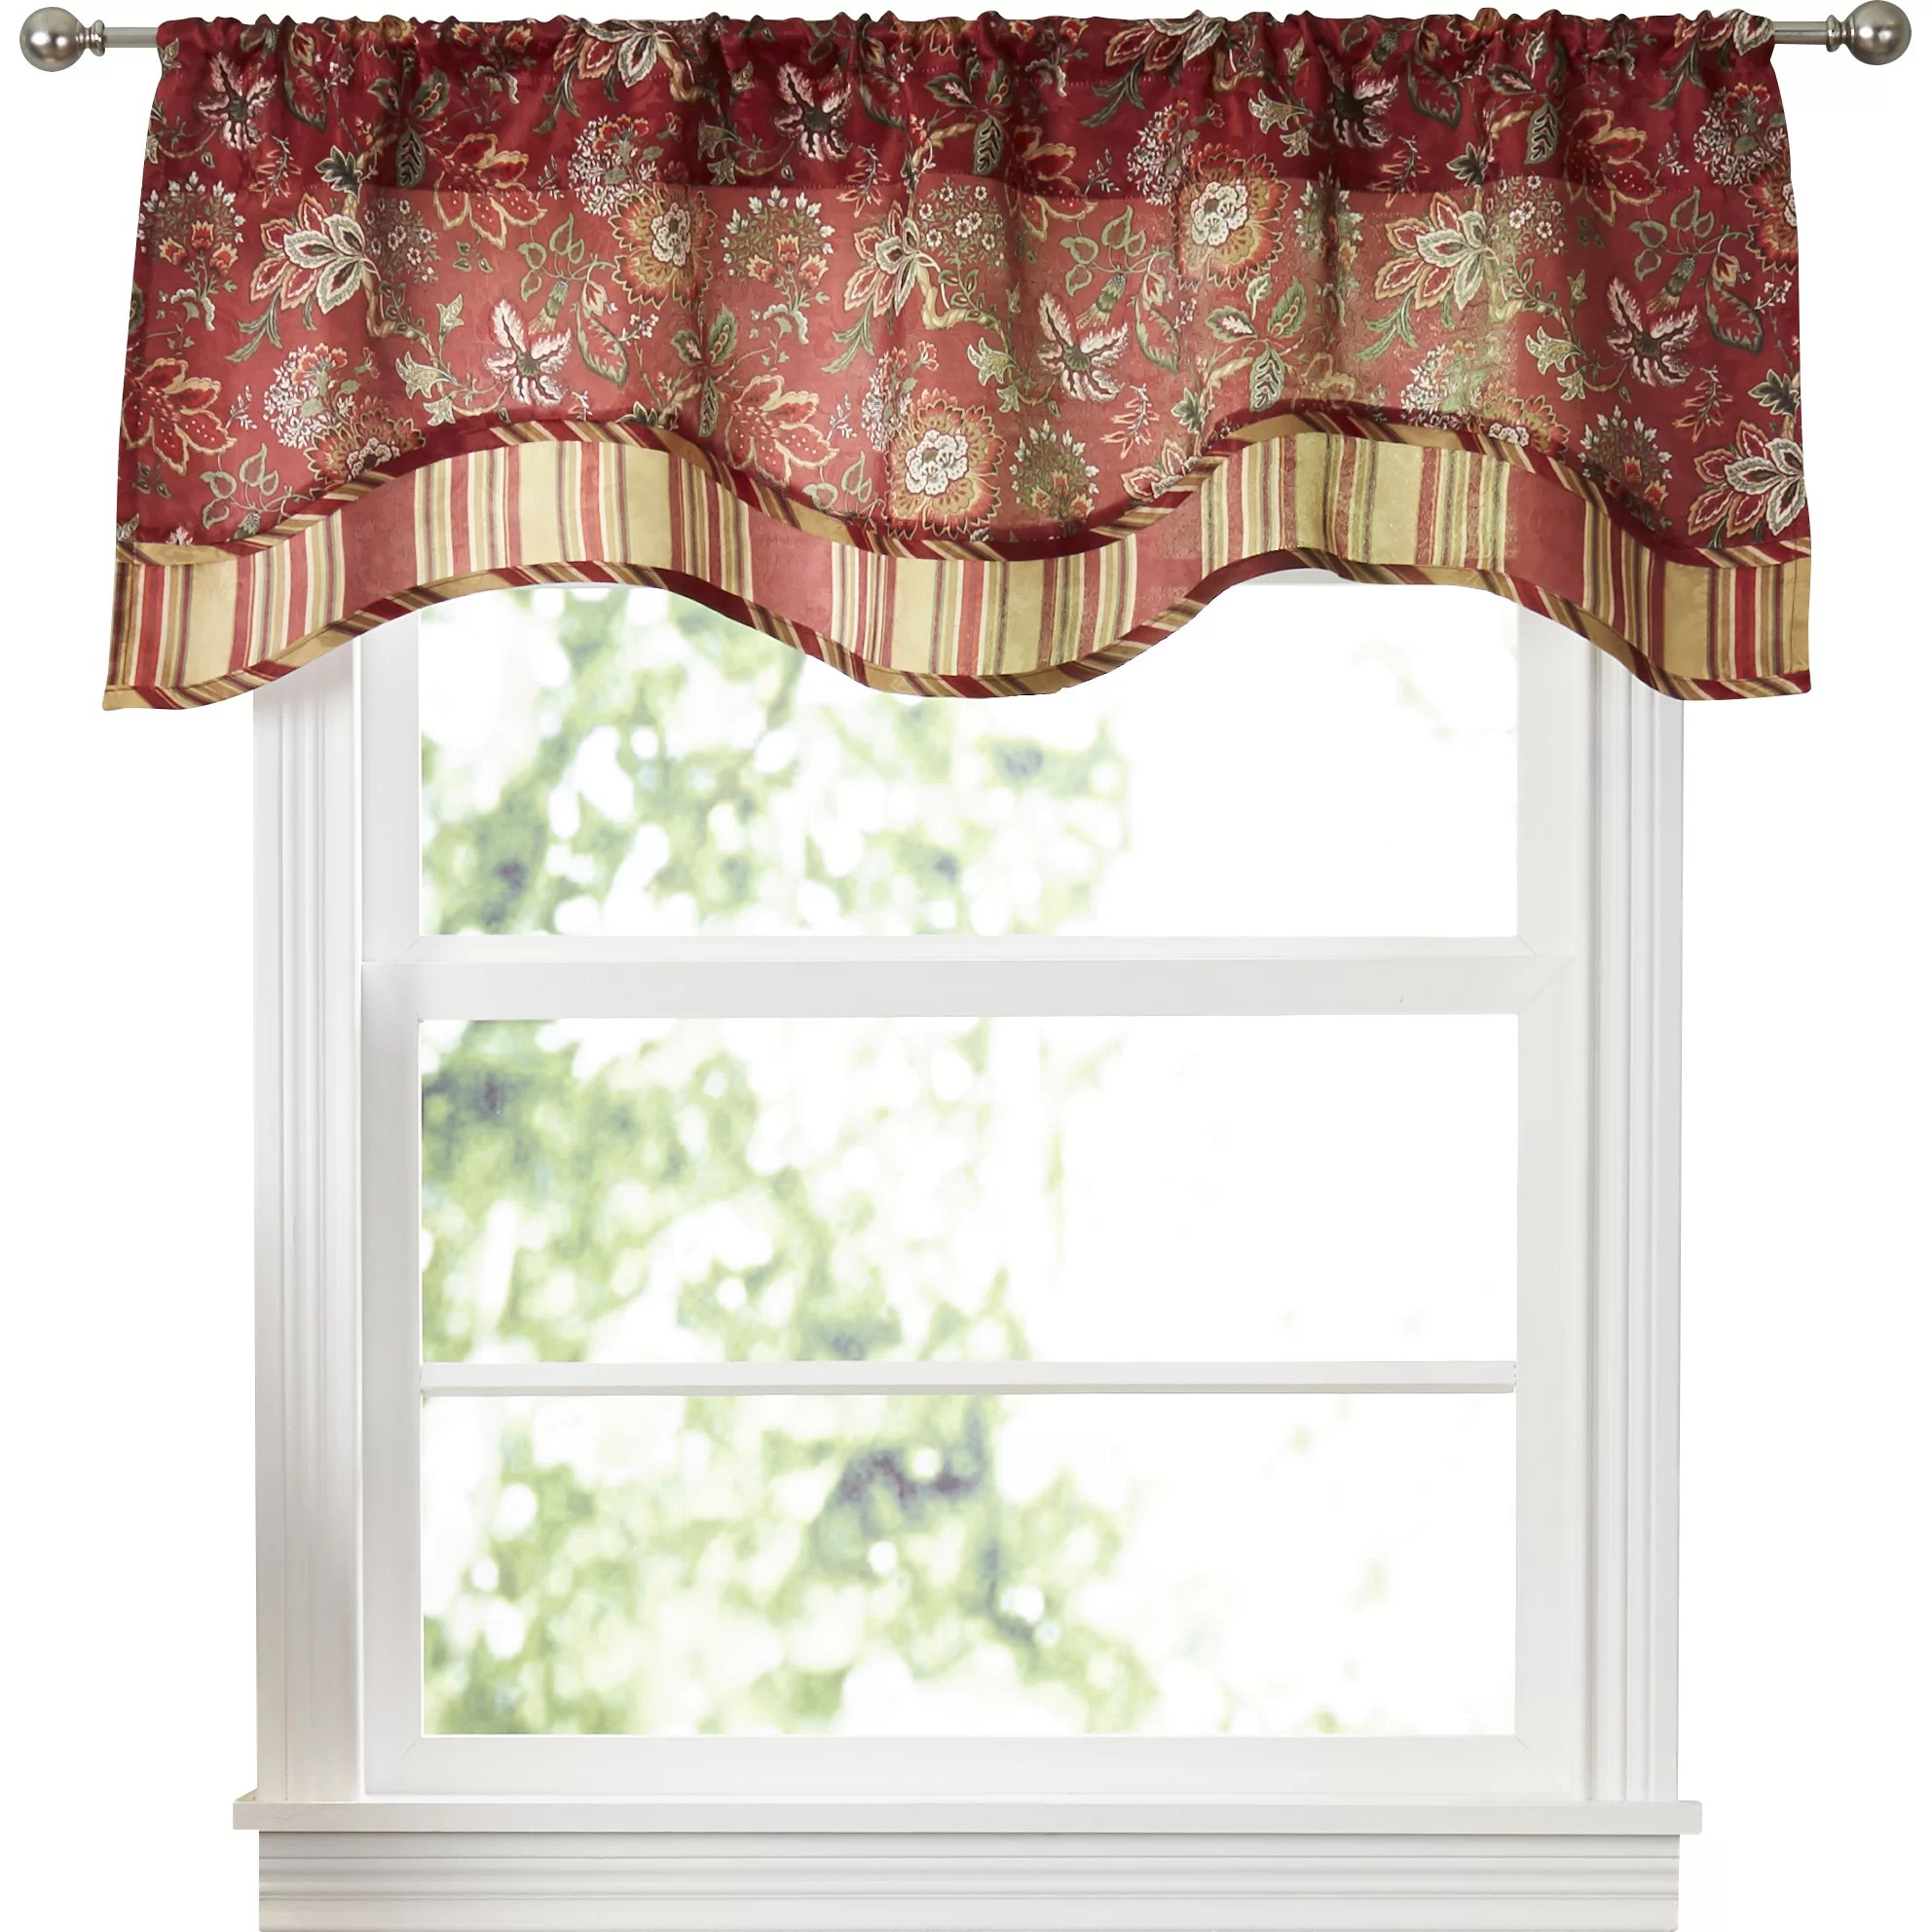 Traditions By Waverly Navarra Floral 52 Curtain Valance